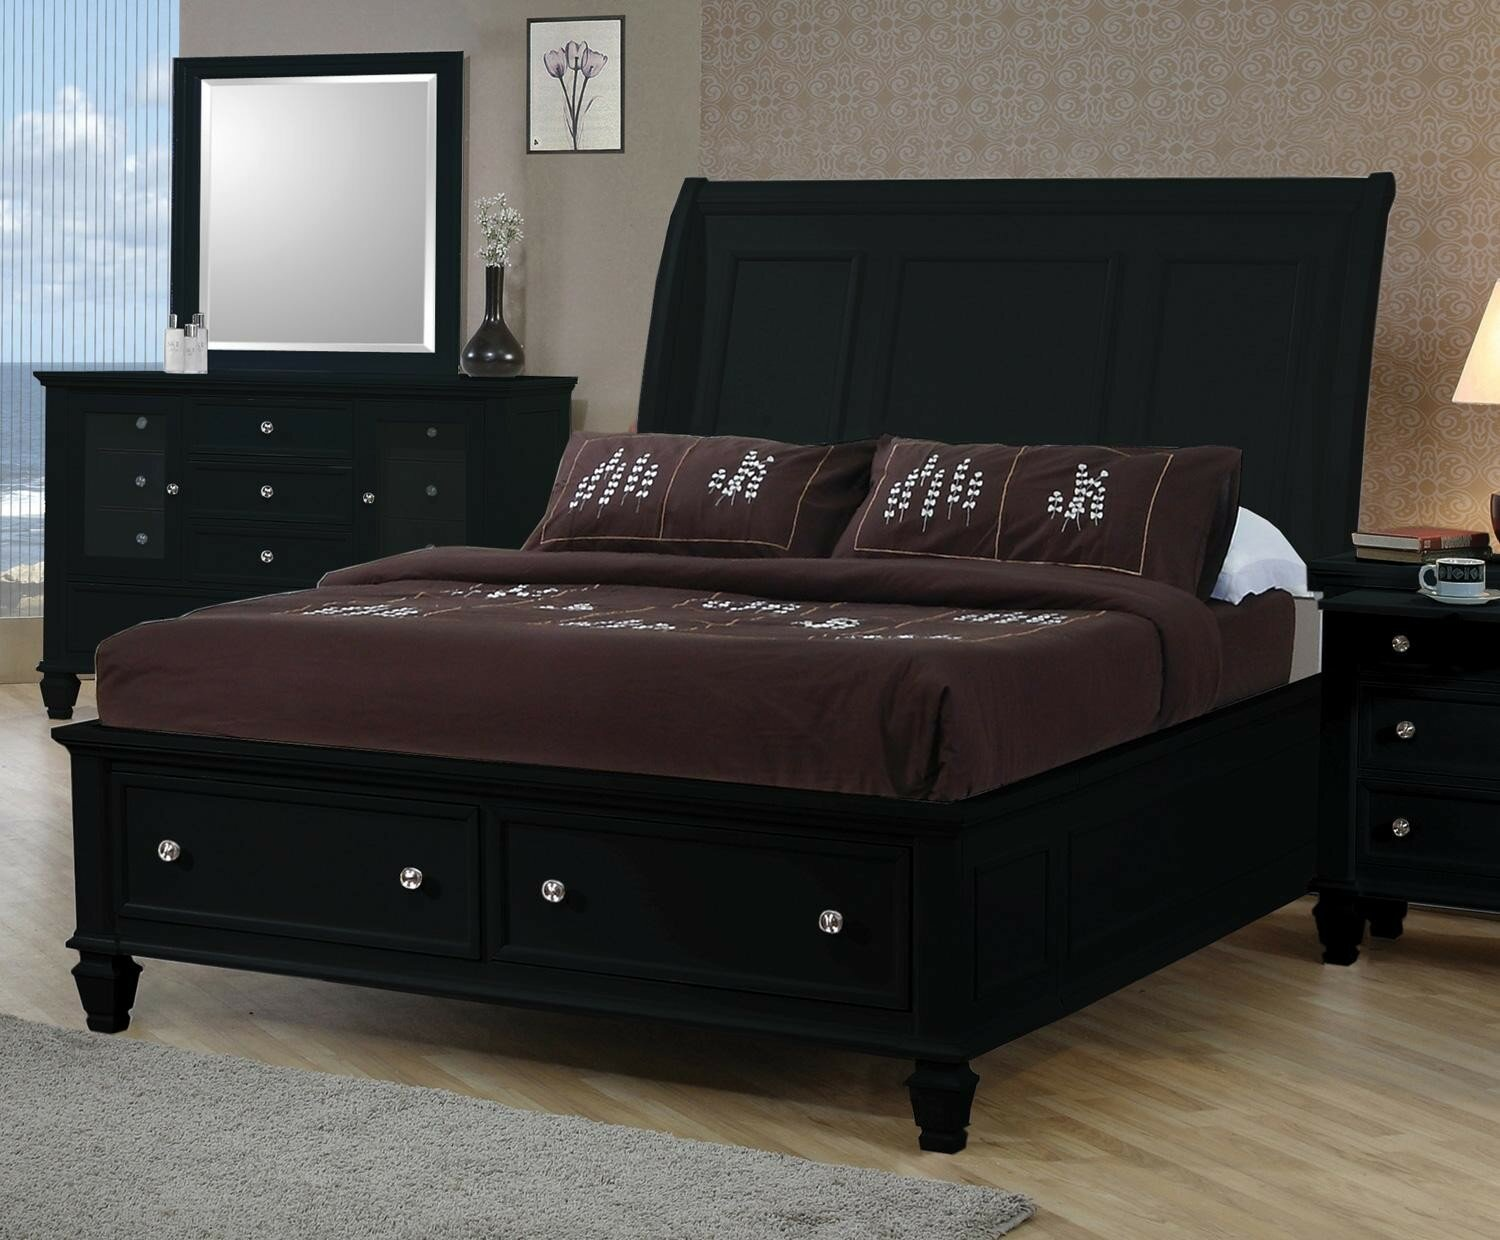 Craigslist Bedroom Sets for Elegant Bedroom Furniture Ideas: Craigslist Beds For Sale | Craigslist Bedroom Sets | Sectional Sofa Craigslist